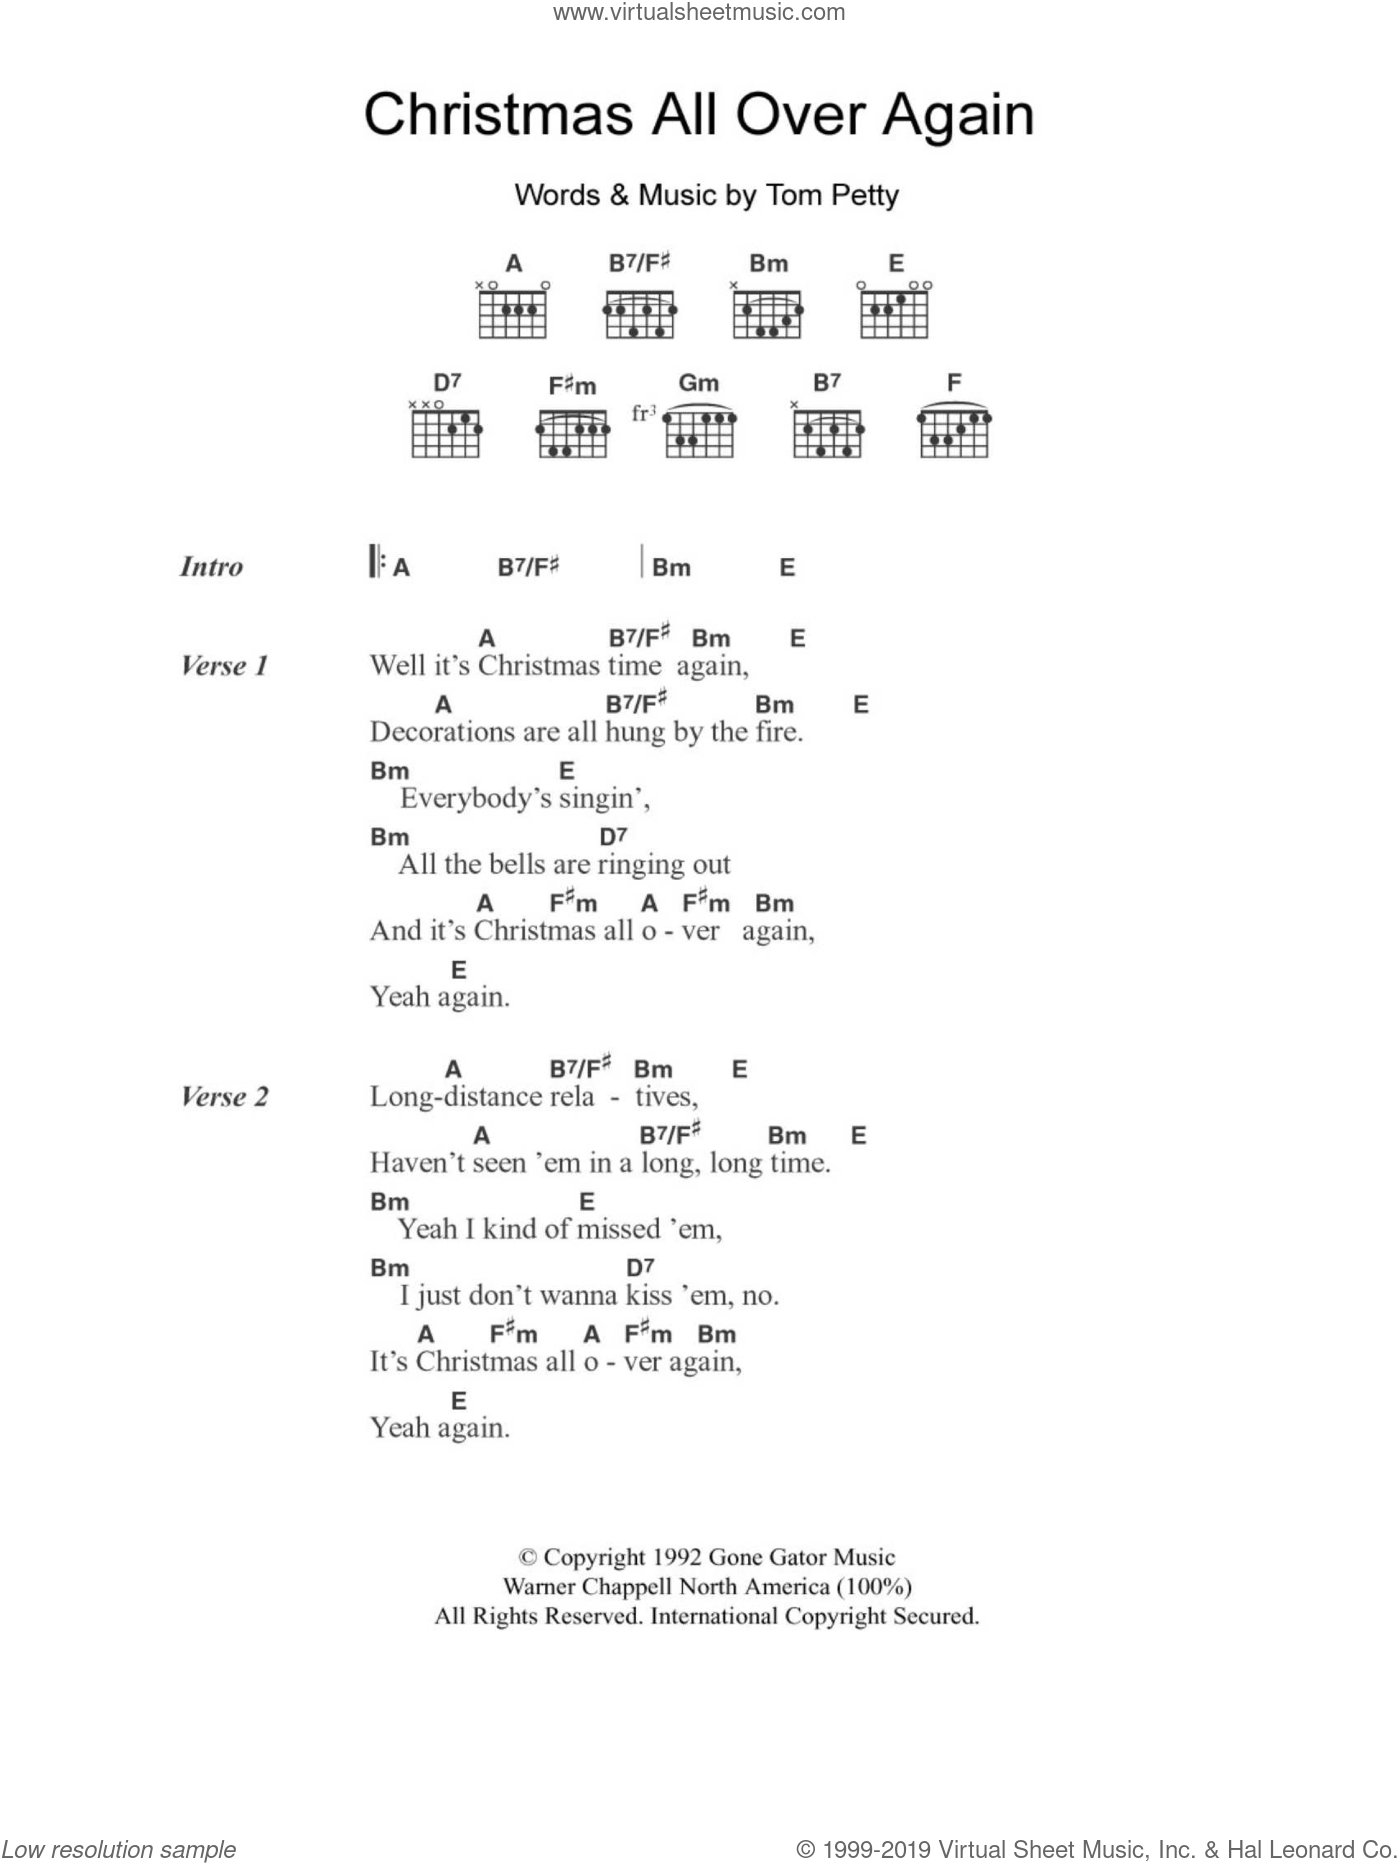 Christmas All Over Again sheet music for guitar (chords) by Tom Petty. Score Image Preview.